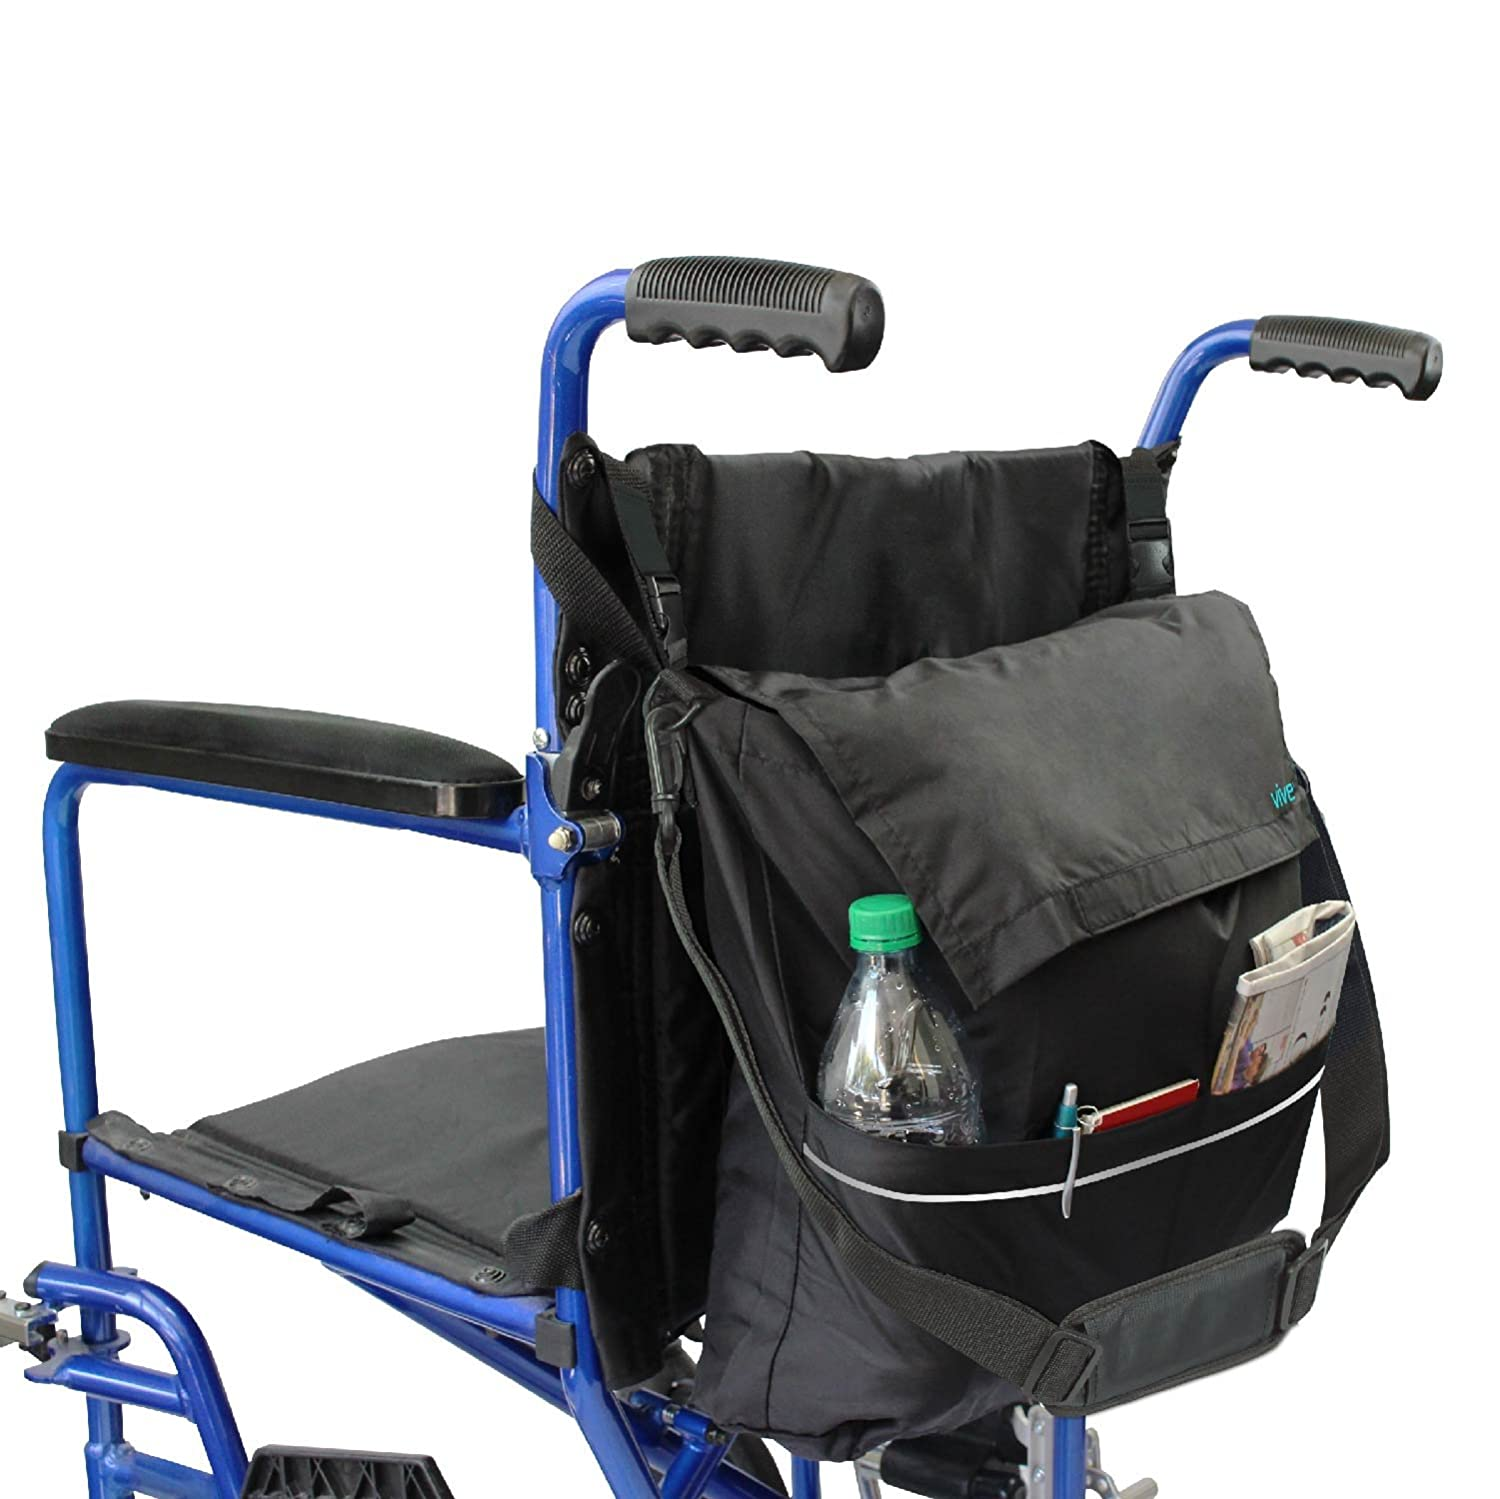 Amazon.com: Wheelchair Bag by Vive - Accessory Storage Bag for ...